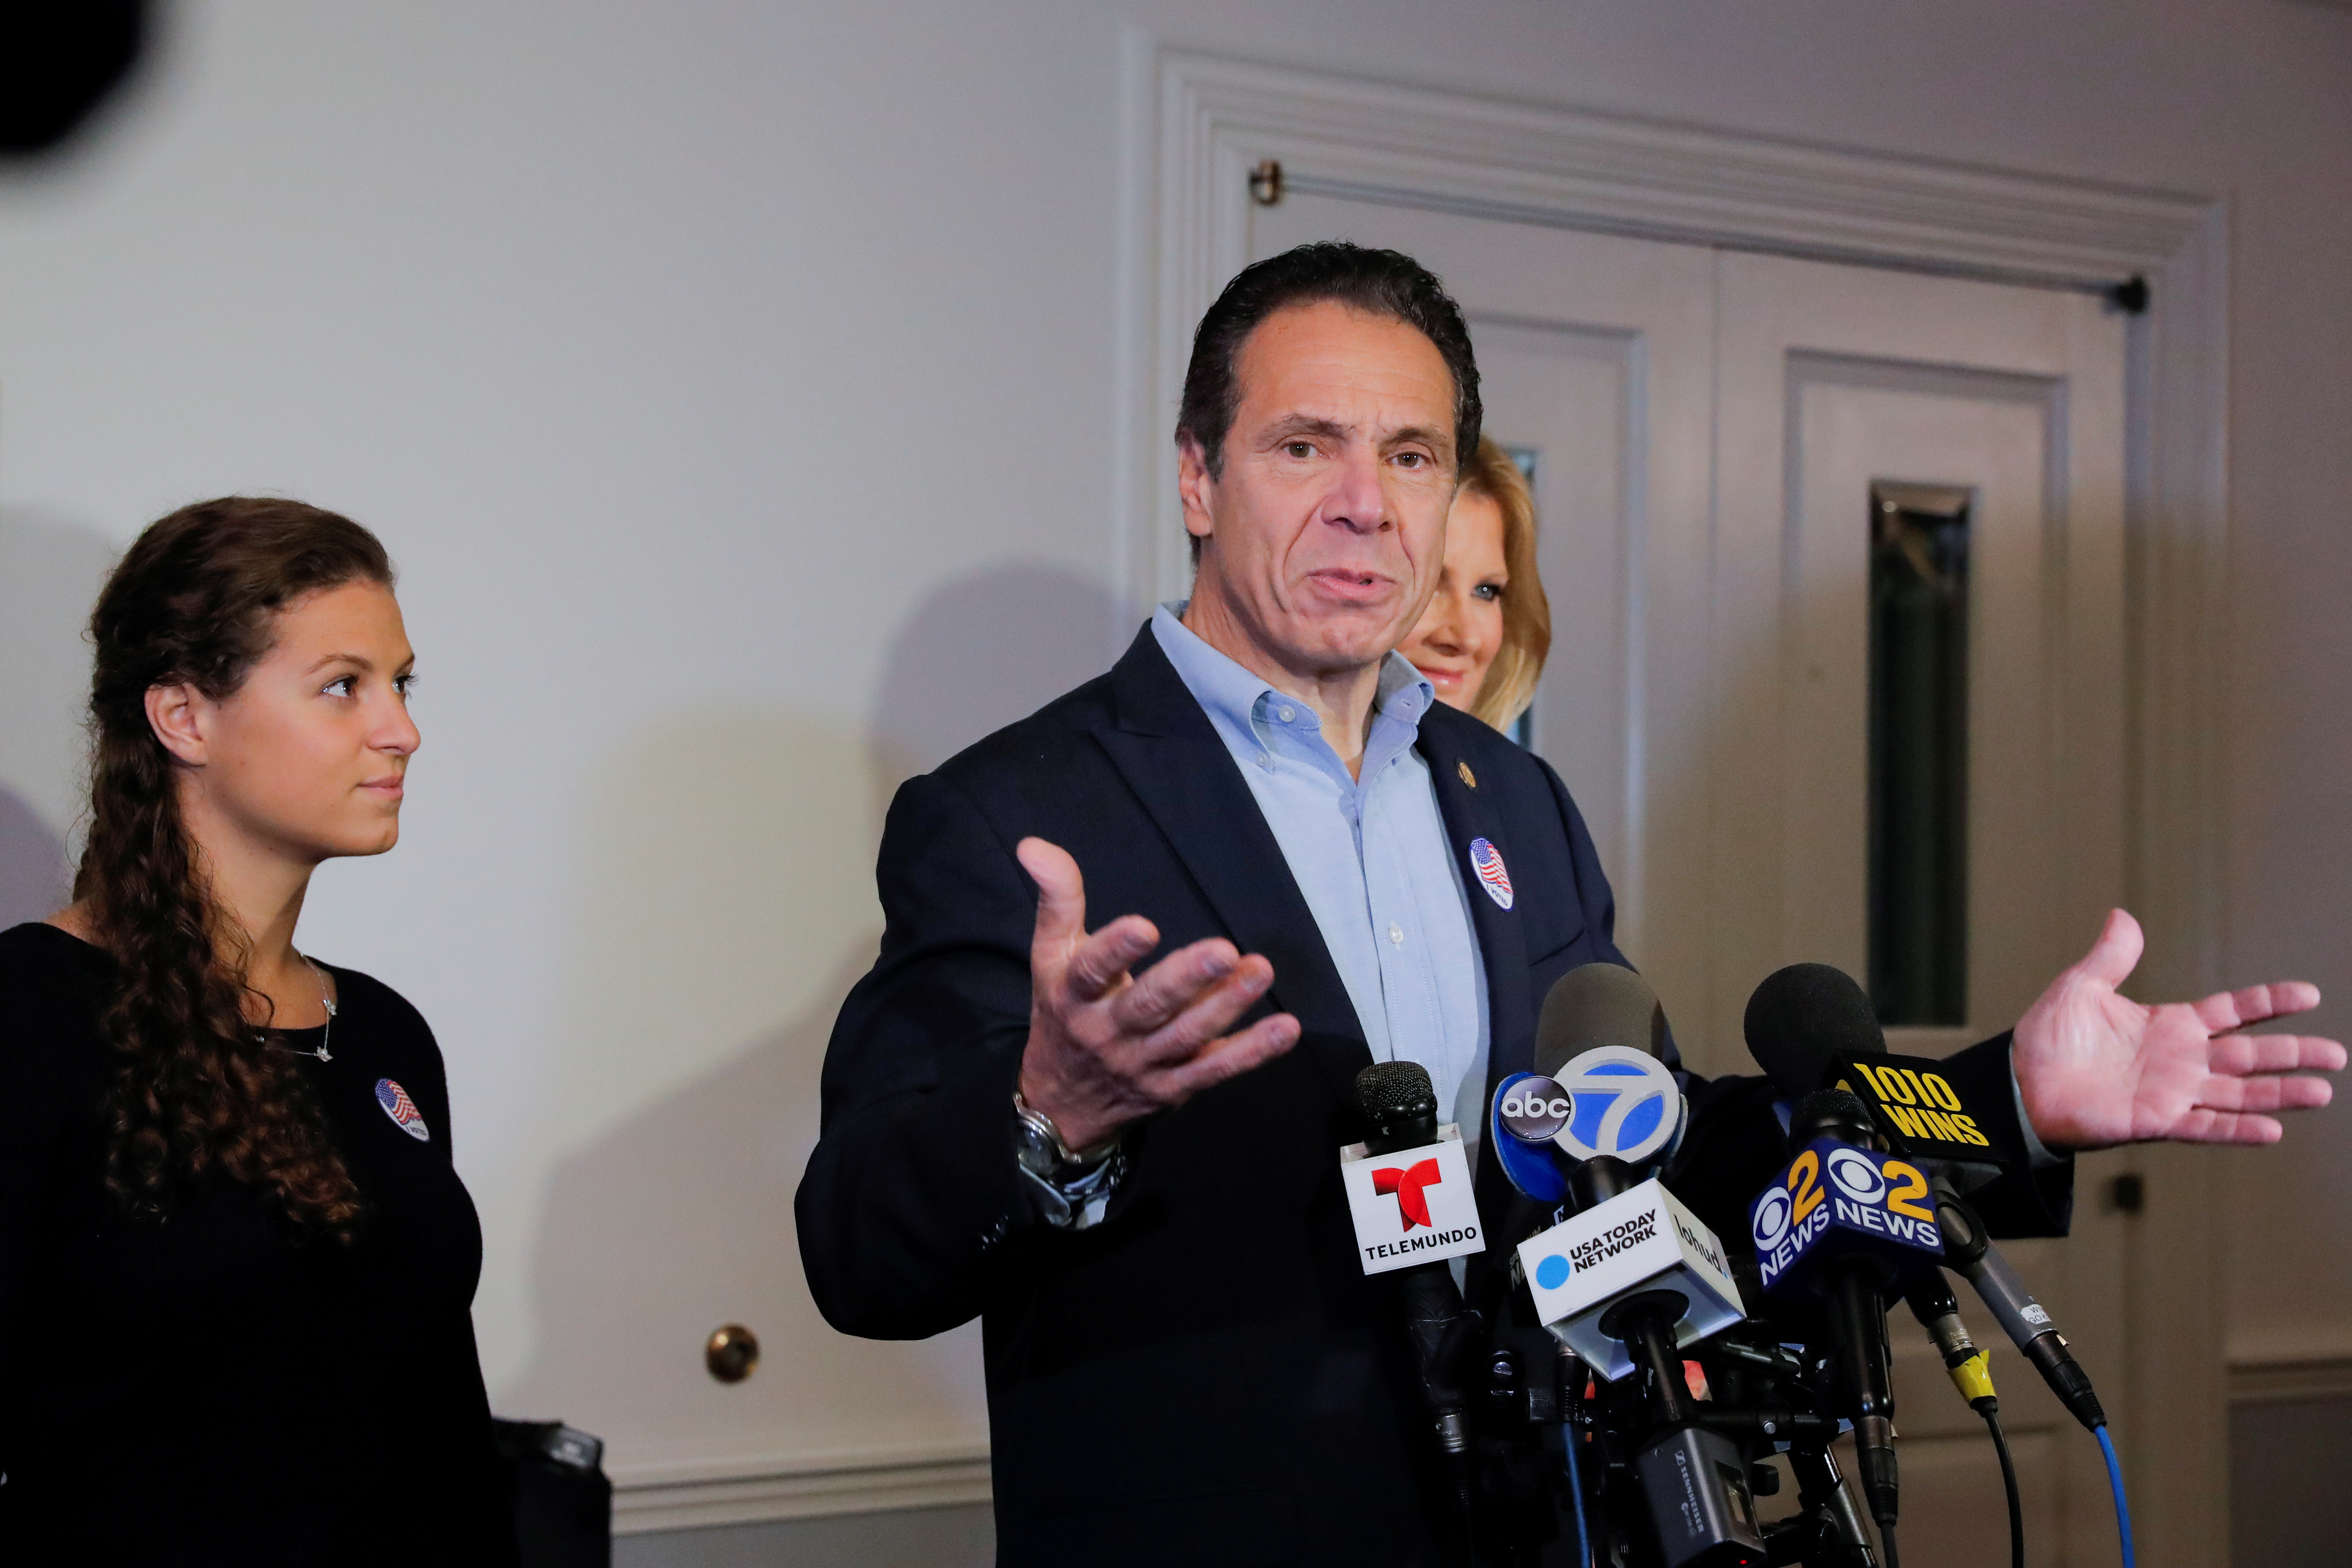 Democratic New York Governor Andrew Cuomo gives a news conference after voting for the midterm elections, at the Presbyterian Church in Mt. Kisco, New York